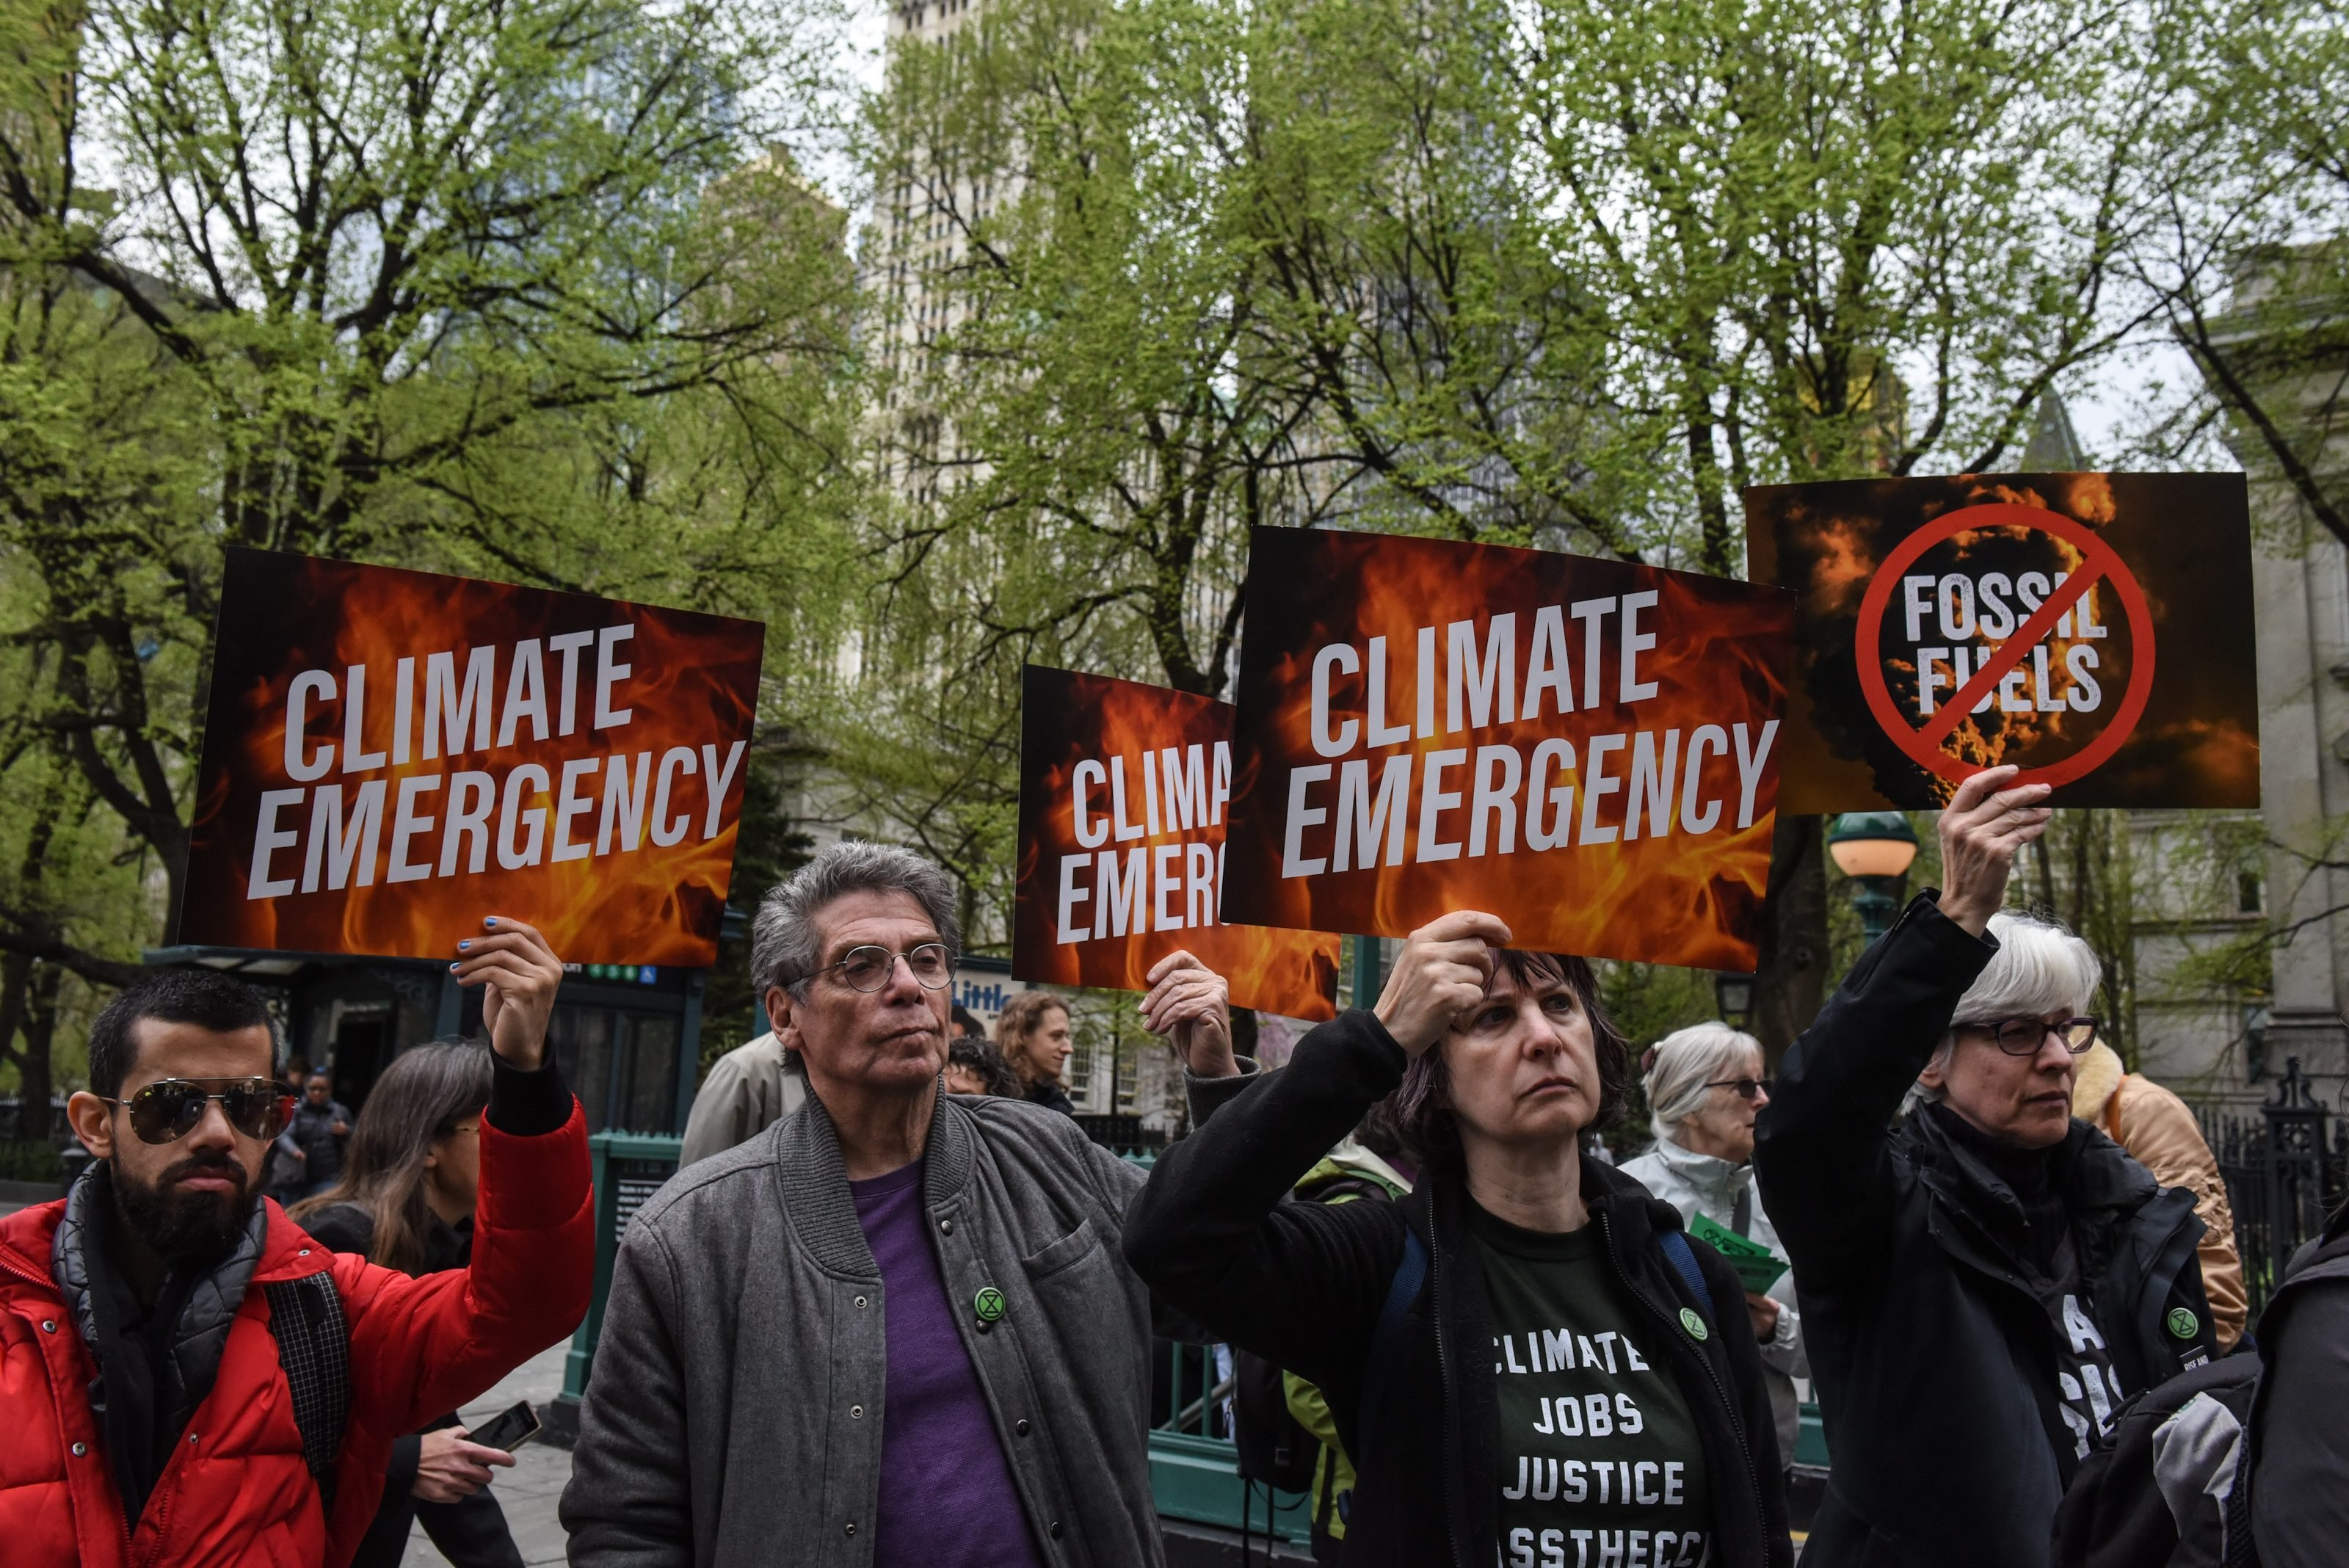 Environmental Activists 'Extinction Rebellion' Hold Climate Change Protest In New York City